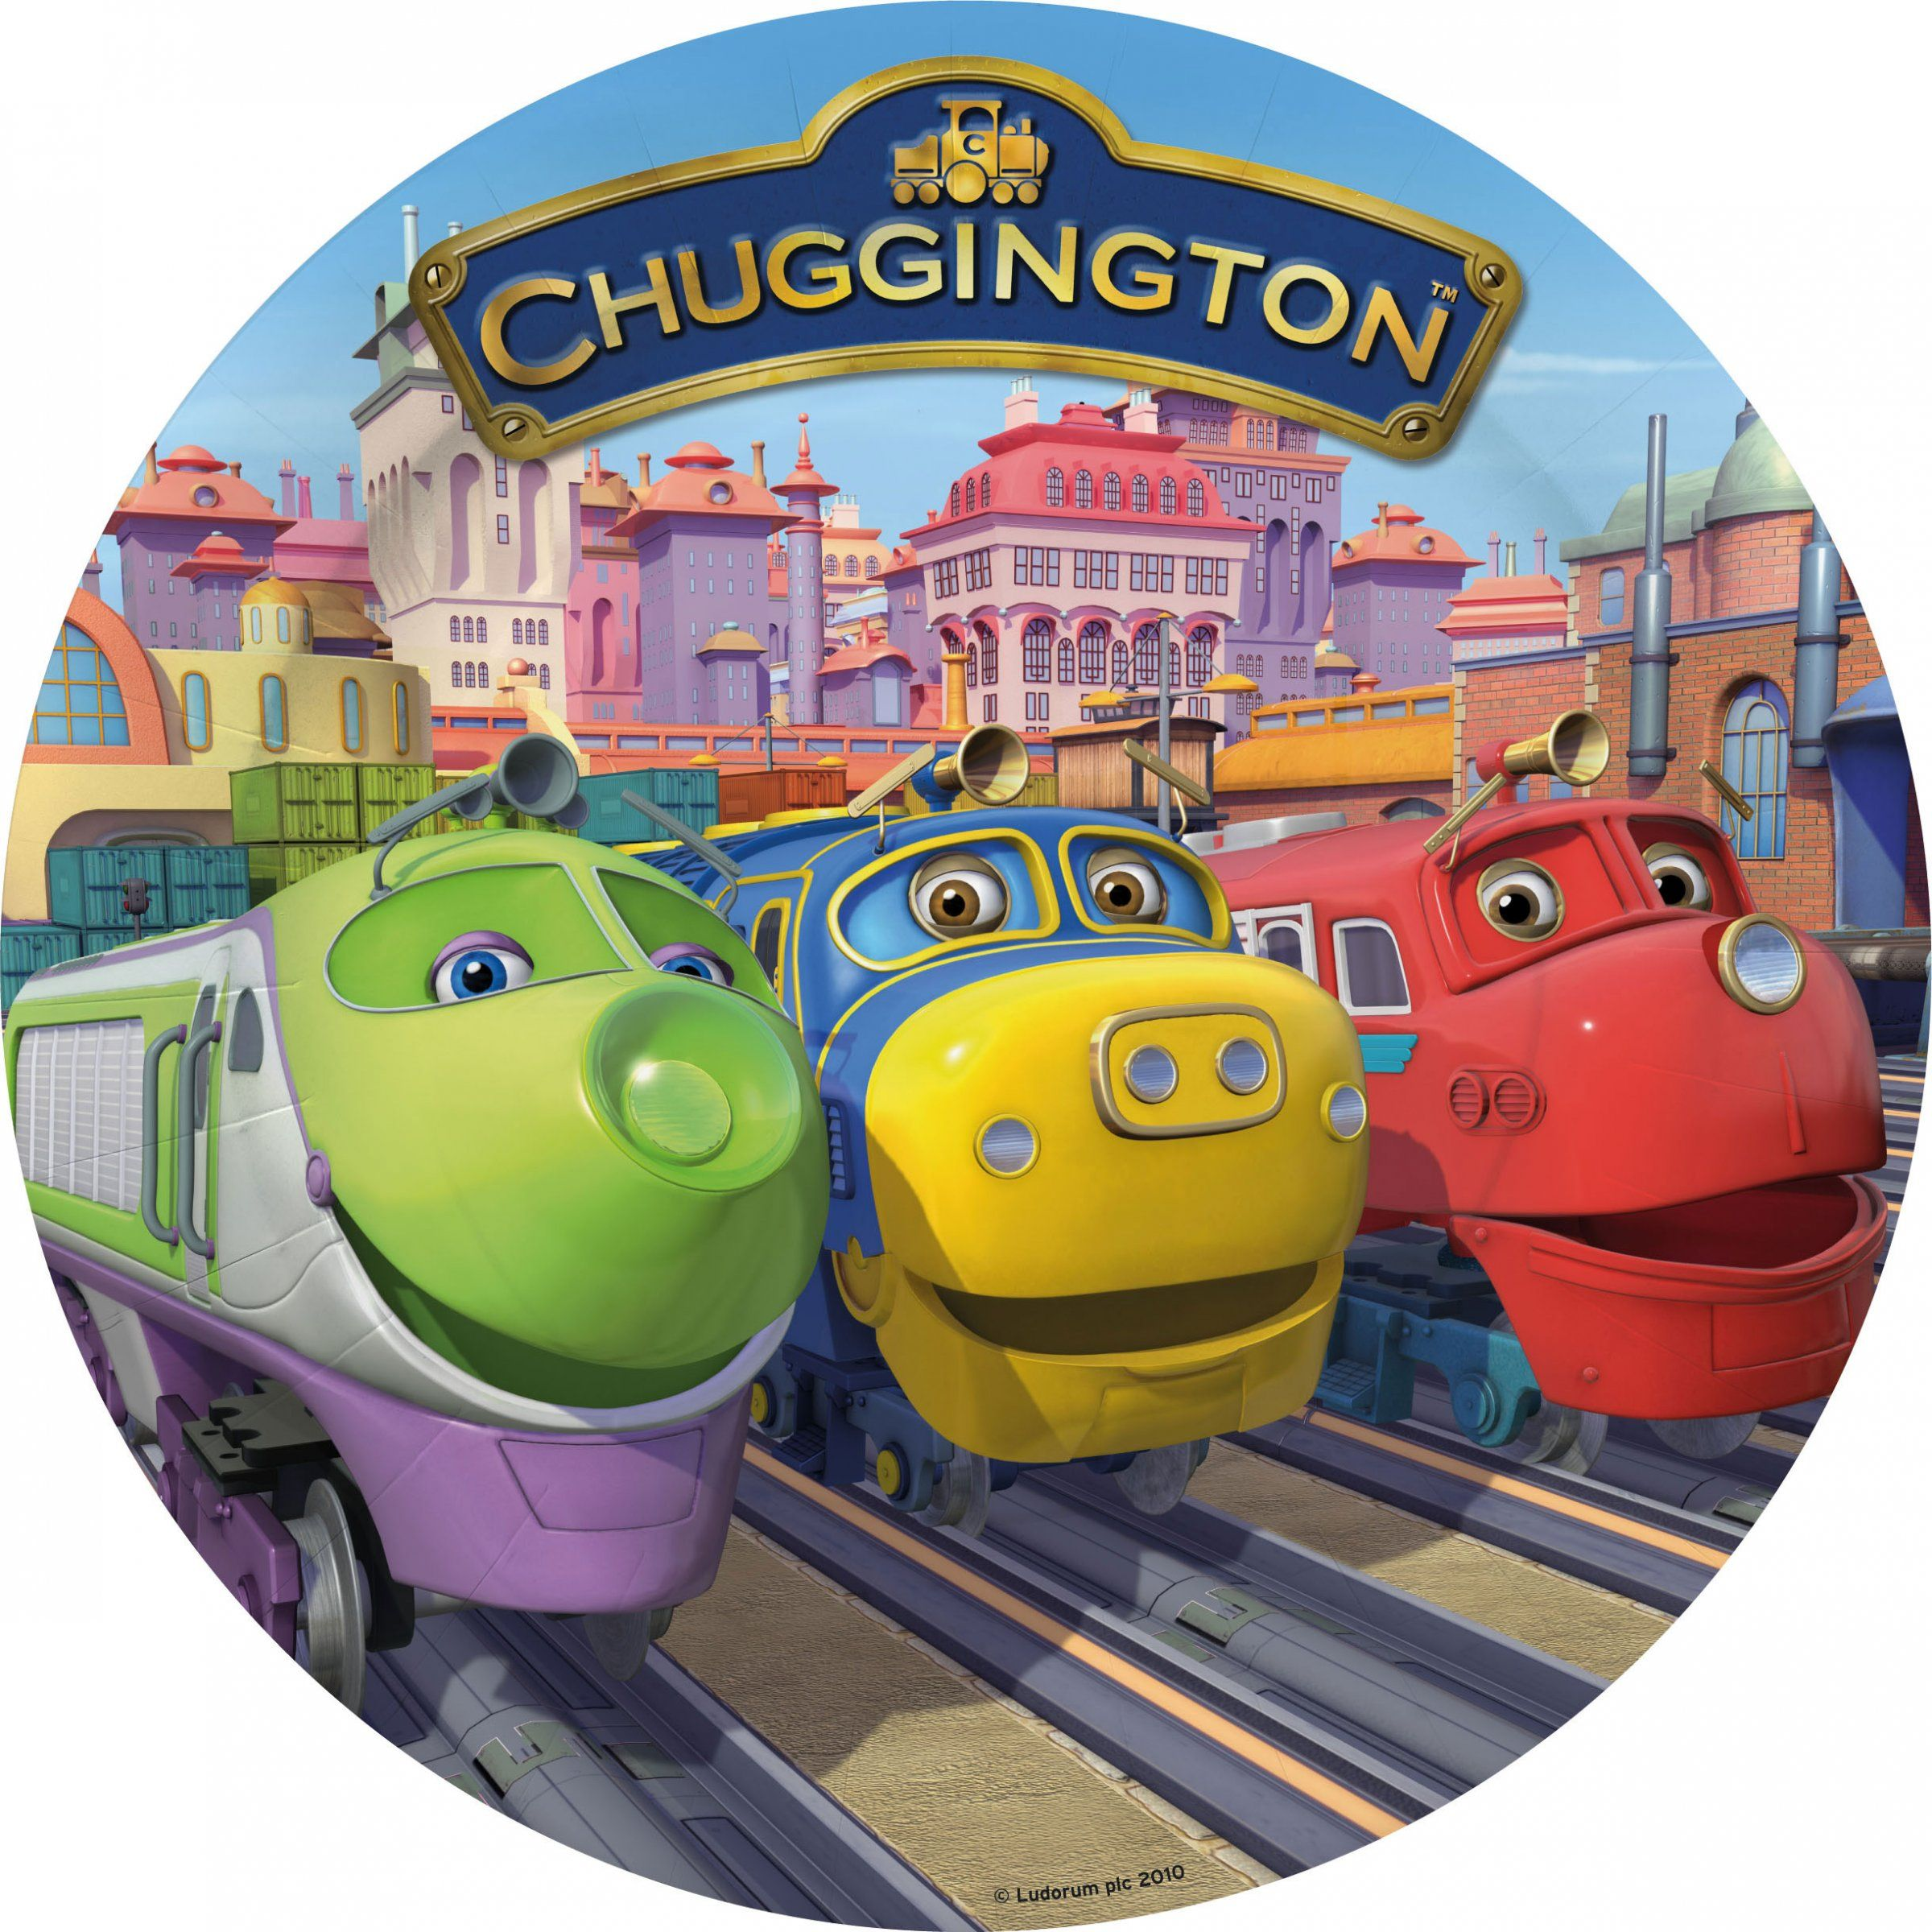 Chuggington Hd Cool 7 HD Wallpapers | fejlesztés | Pinterest | Papel ...